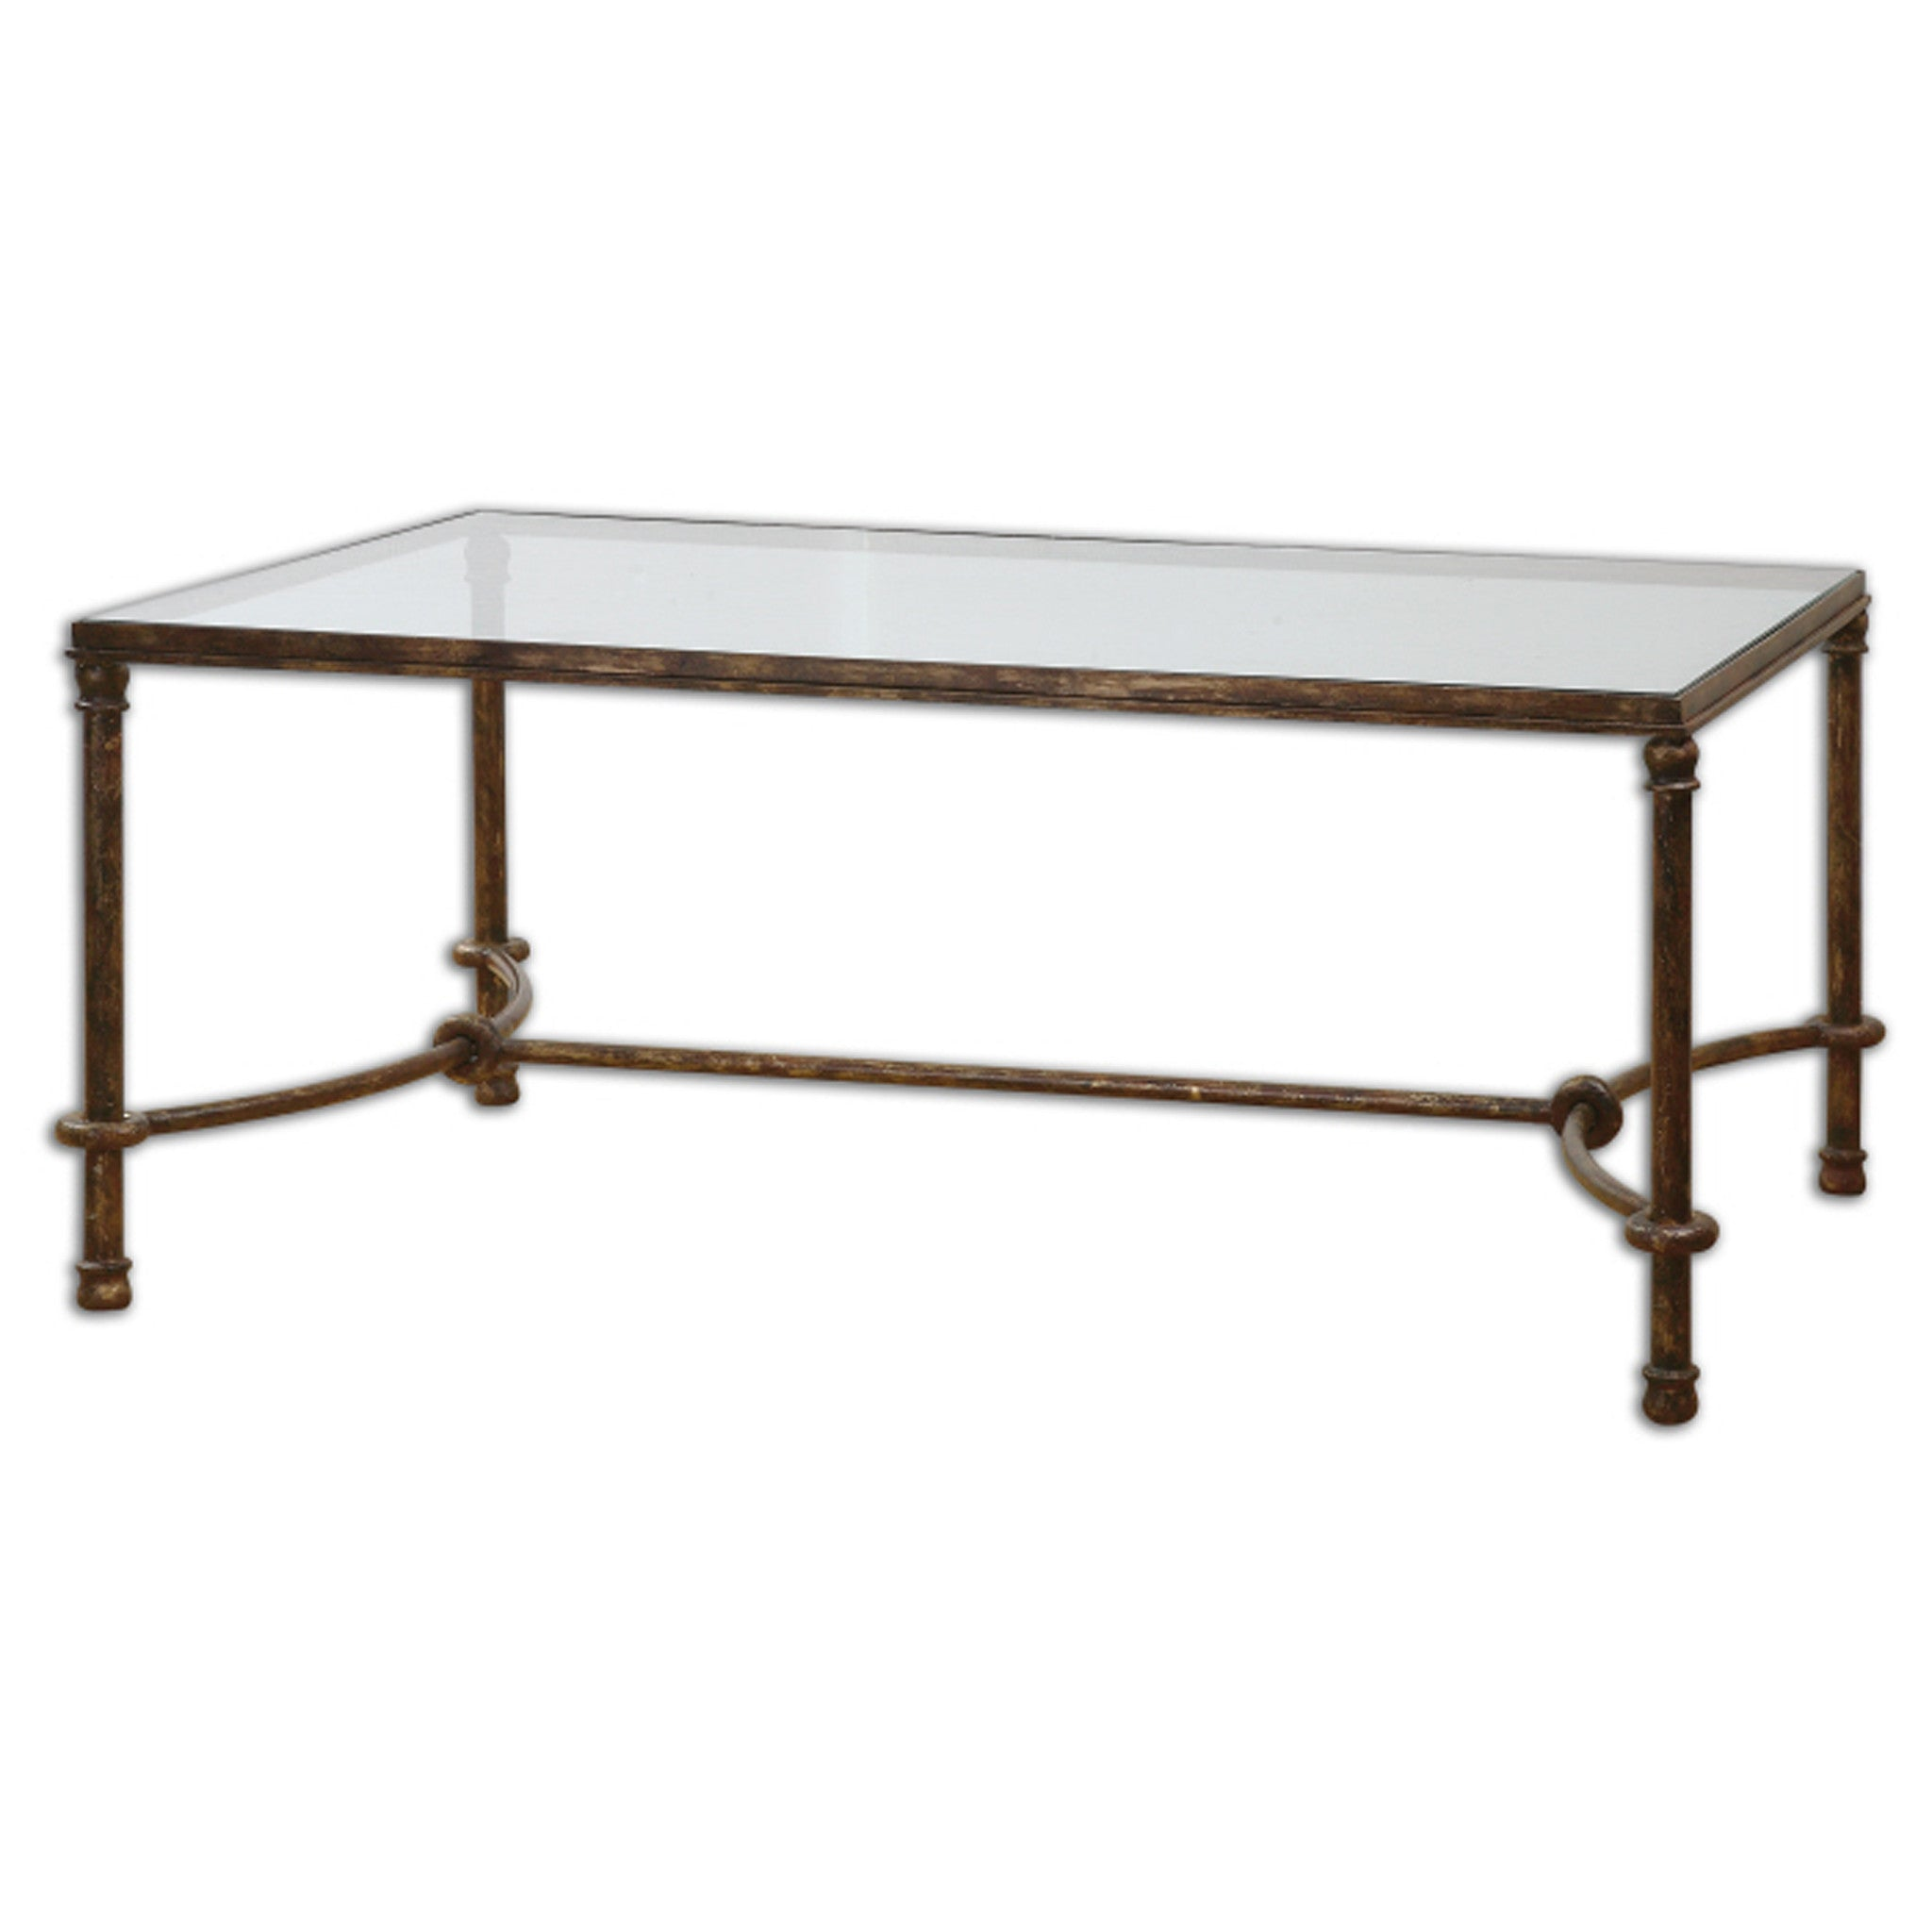 Warring coffee table madison creek furnishings warring coffee table geotapseo Image collections